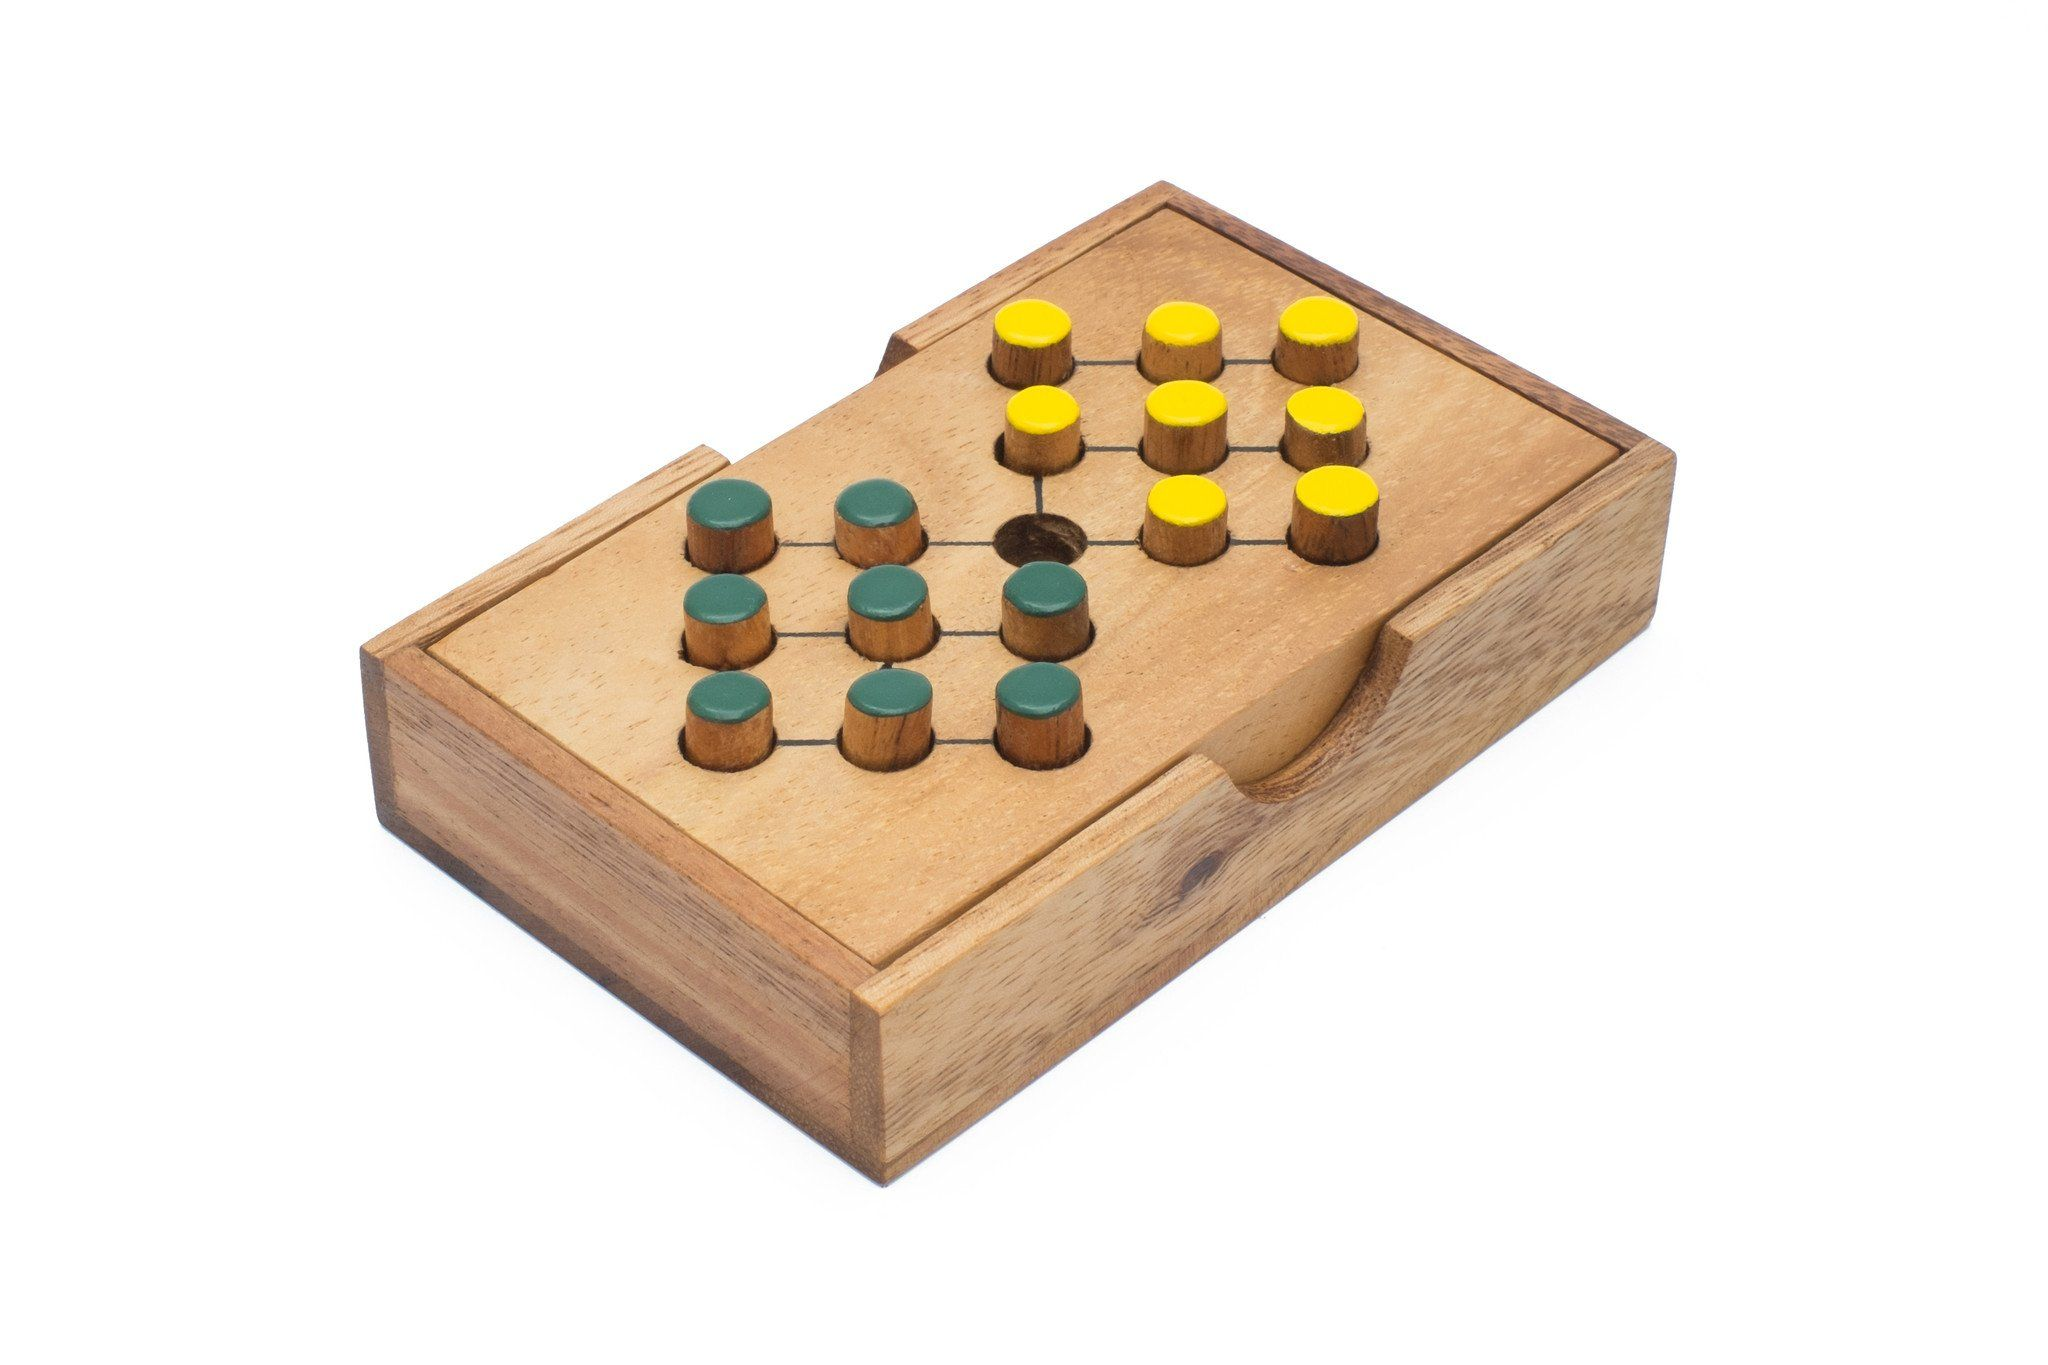 Battlefield Traditional games, Games, Brain teaser games